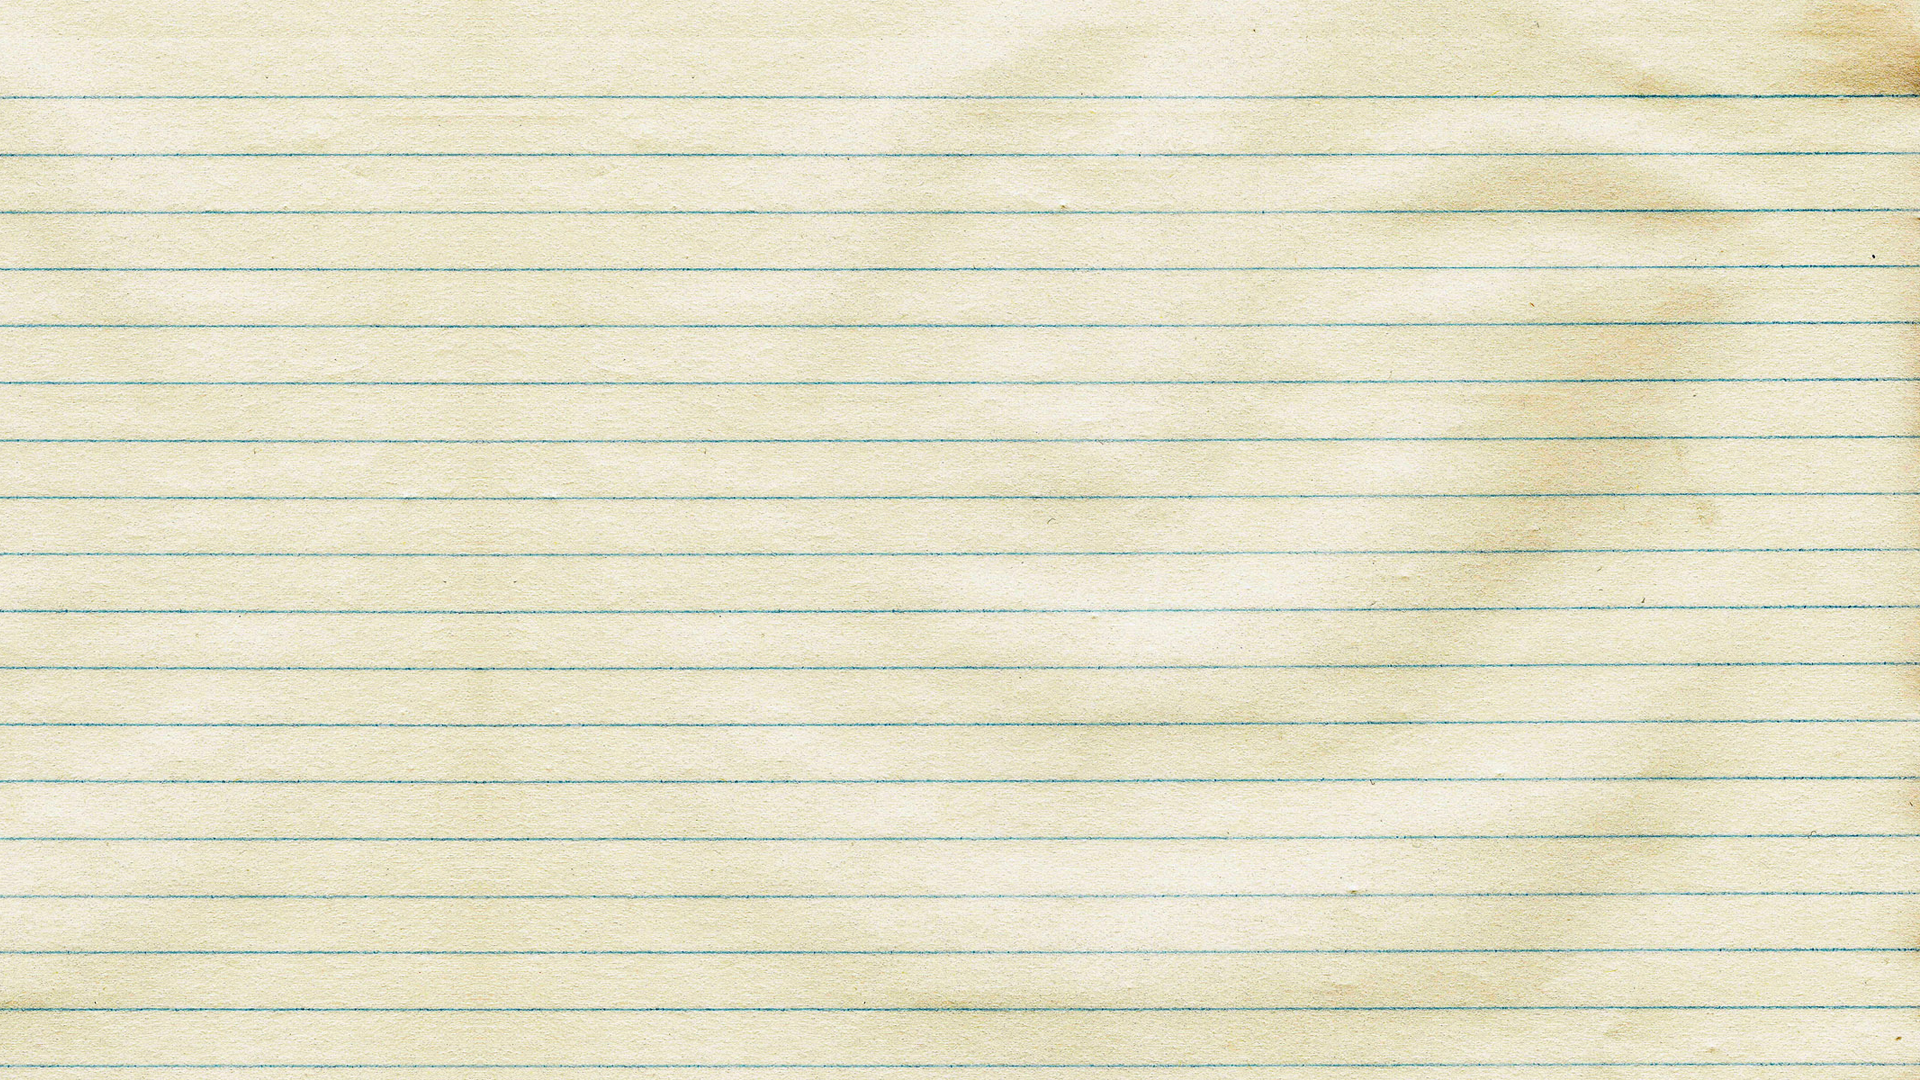 old-notebook-paper-wallpaper-45973-47255-hd-wallpapers.jpg.png